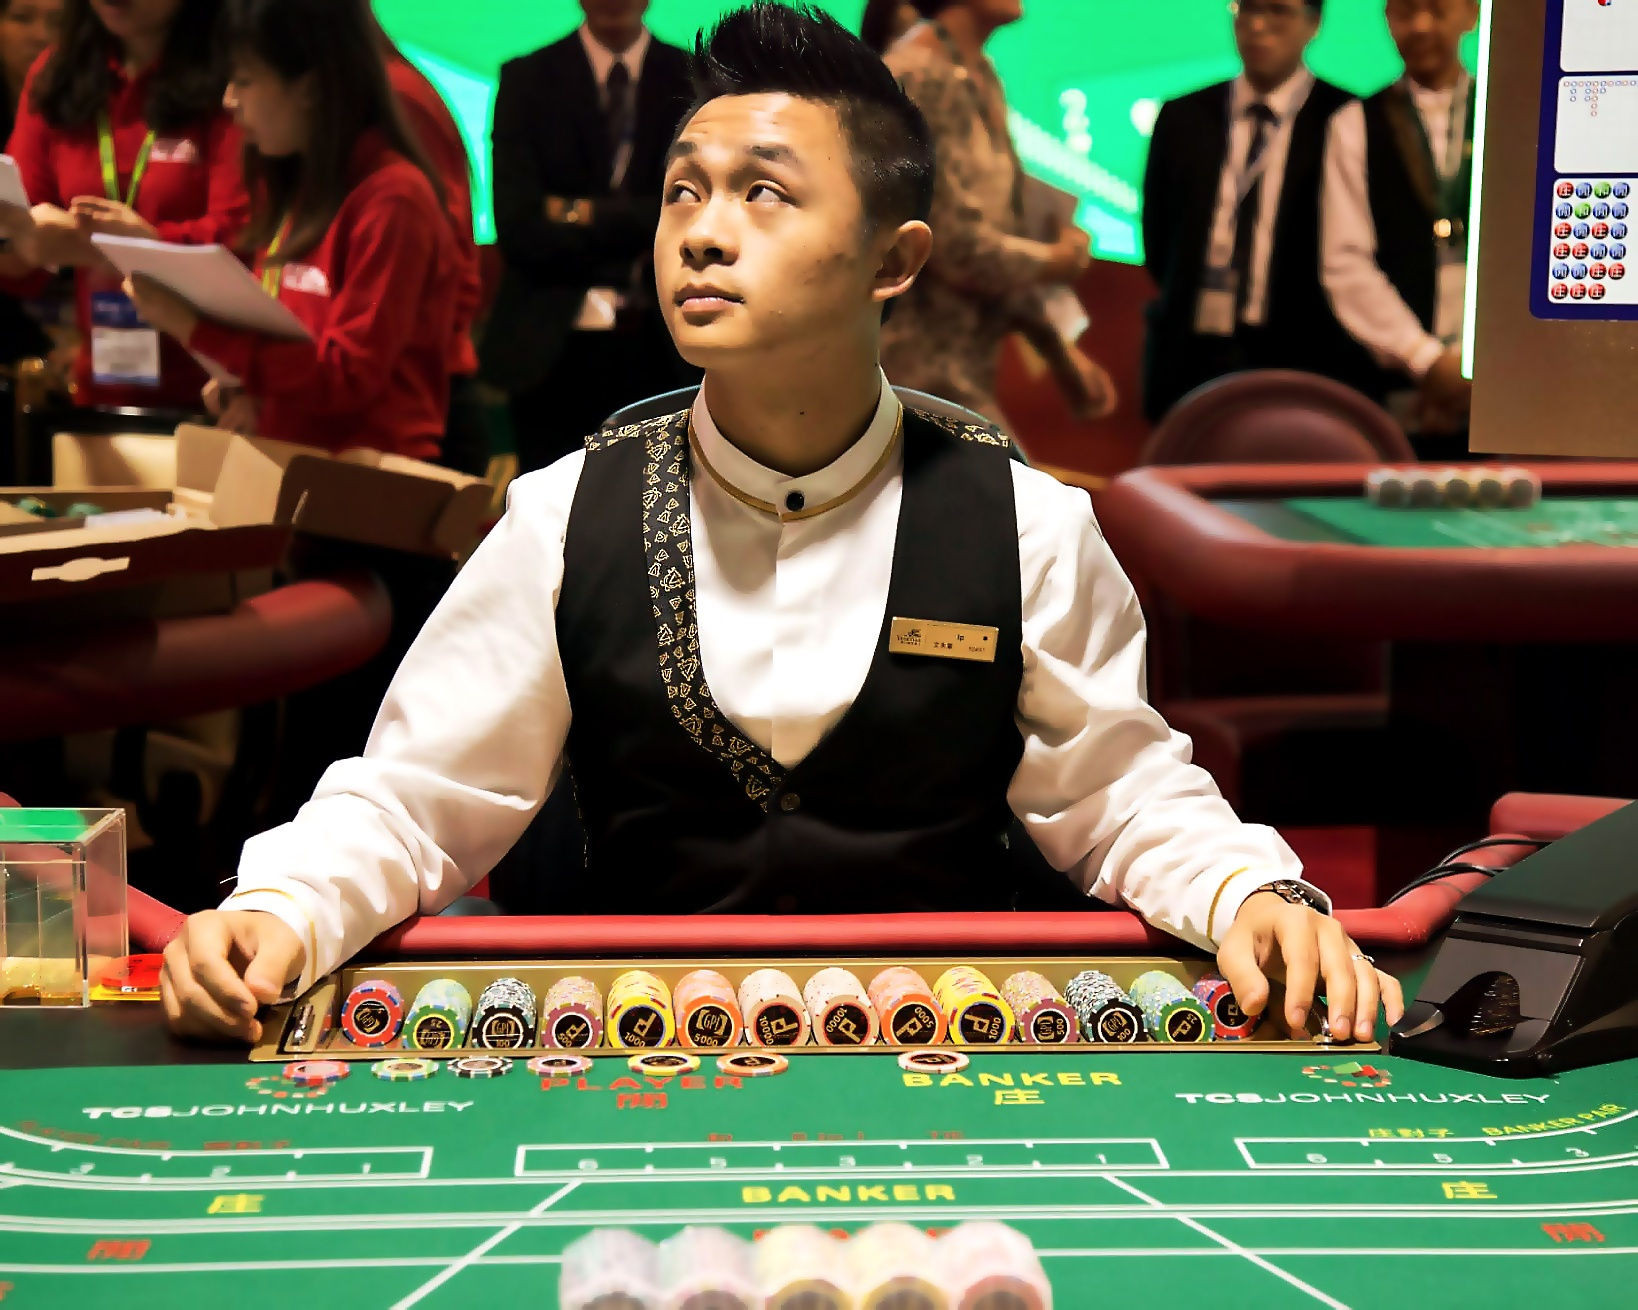 Are the live dealers in online casinos really live? - Quora